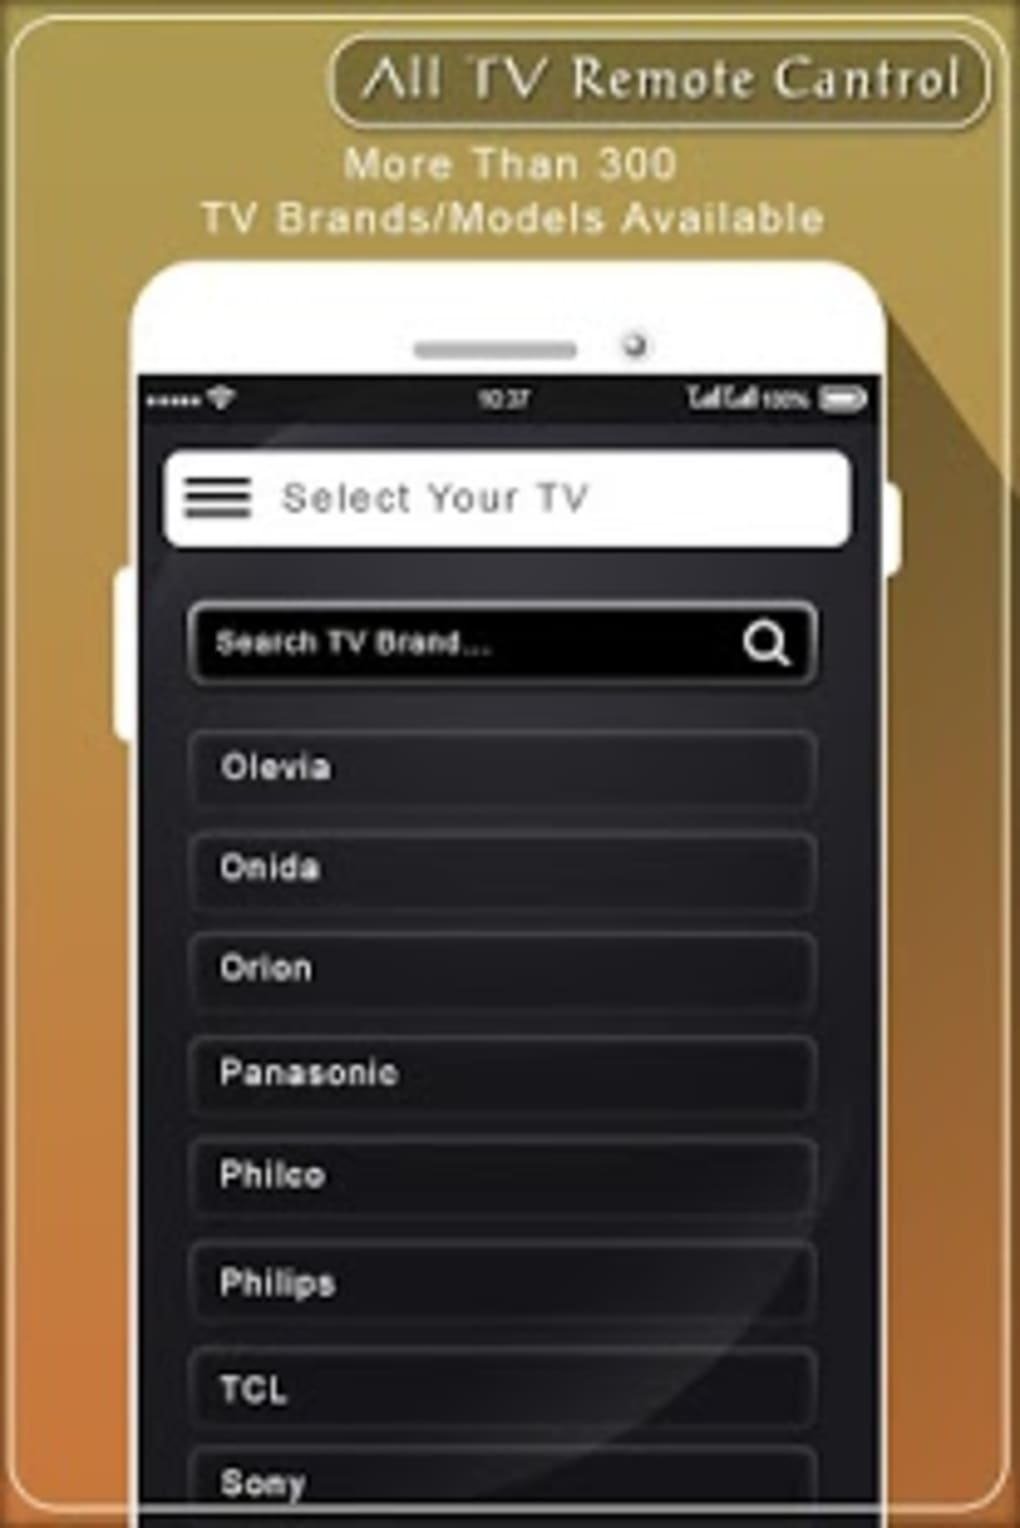 Remote for All TV Model Universal Remote Control for Android - Download